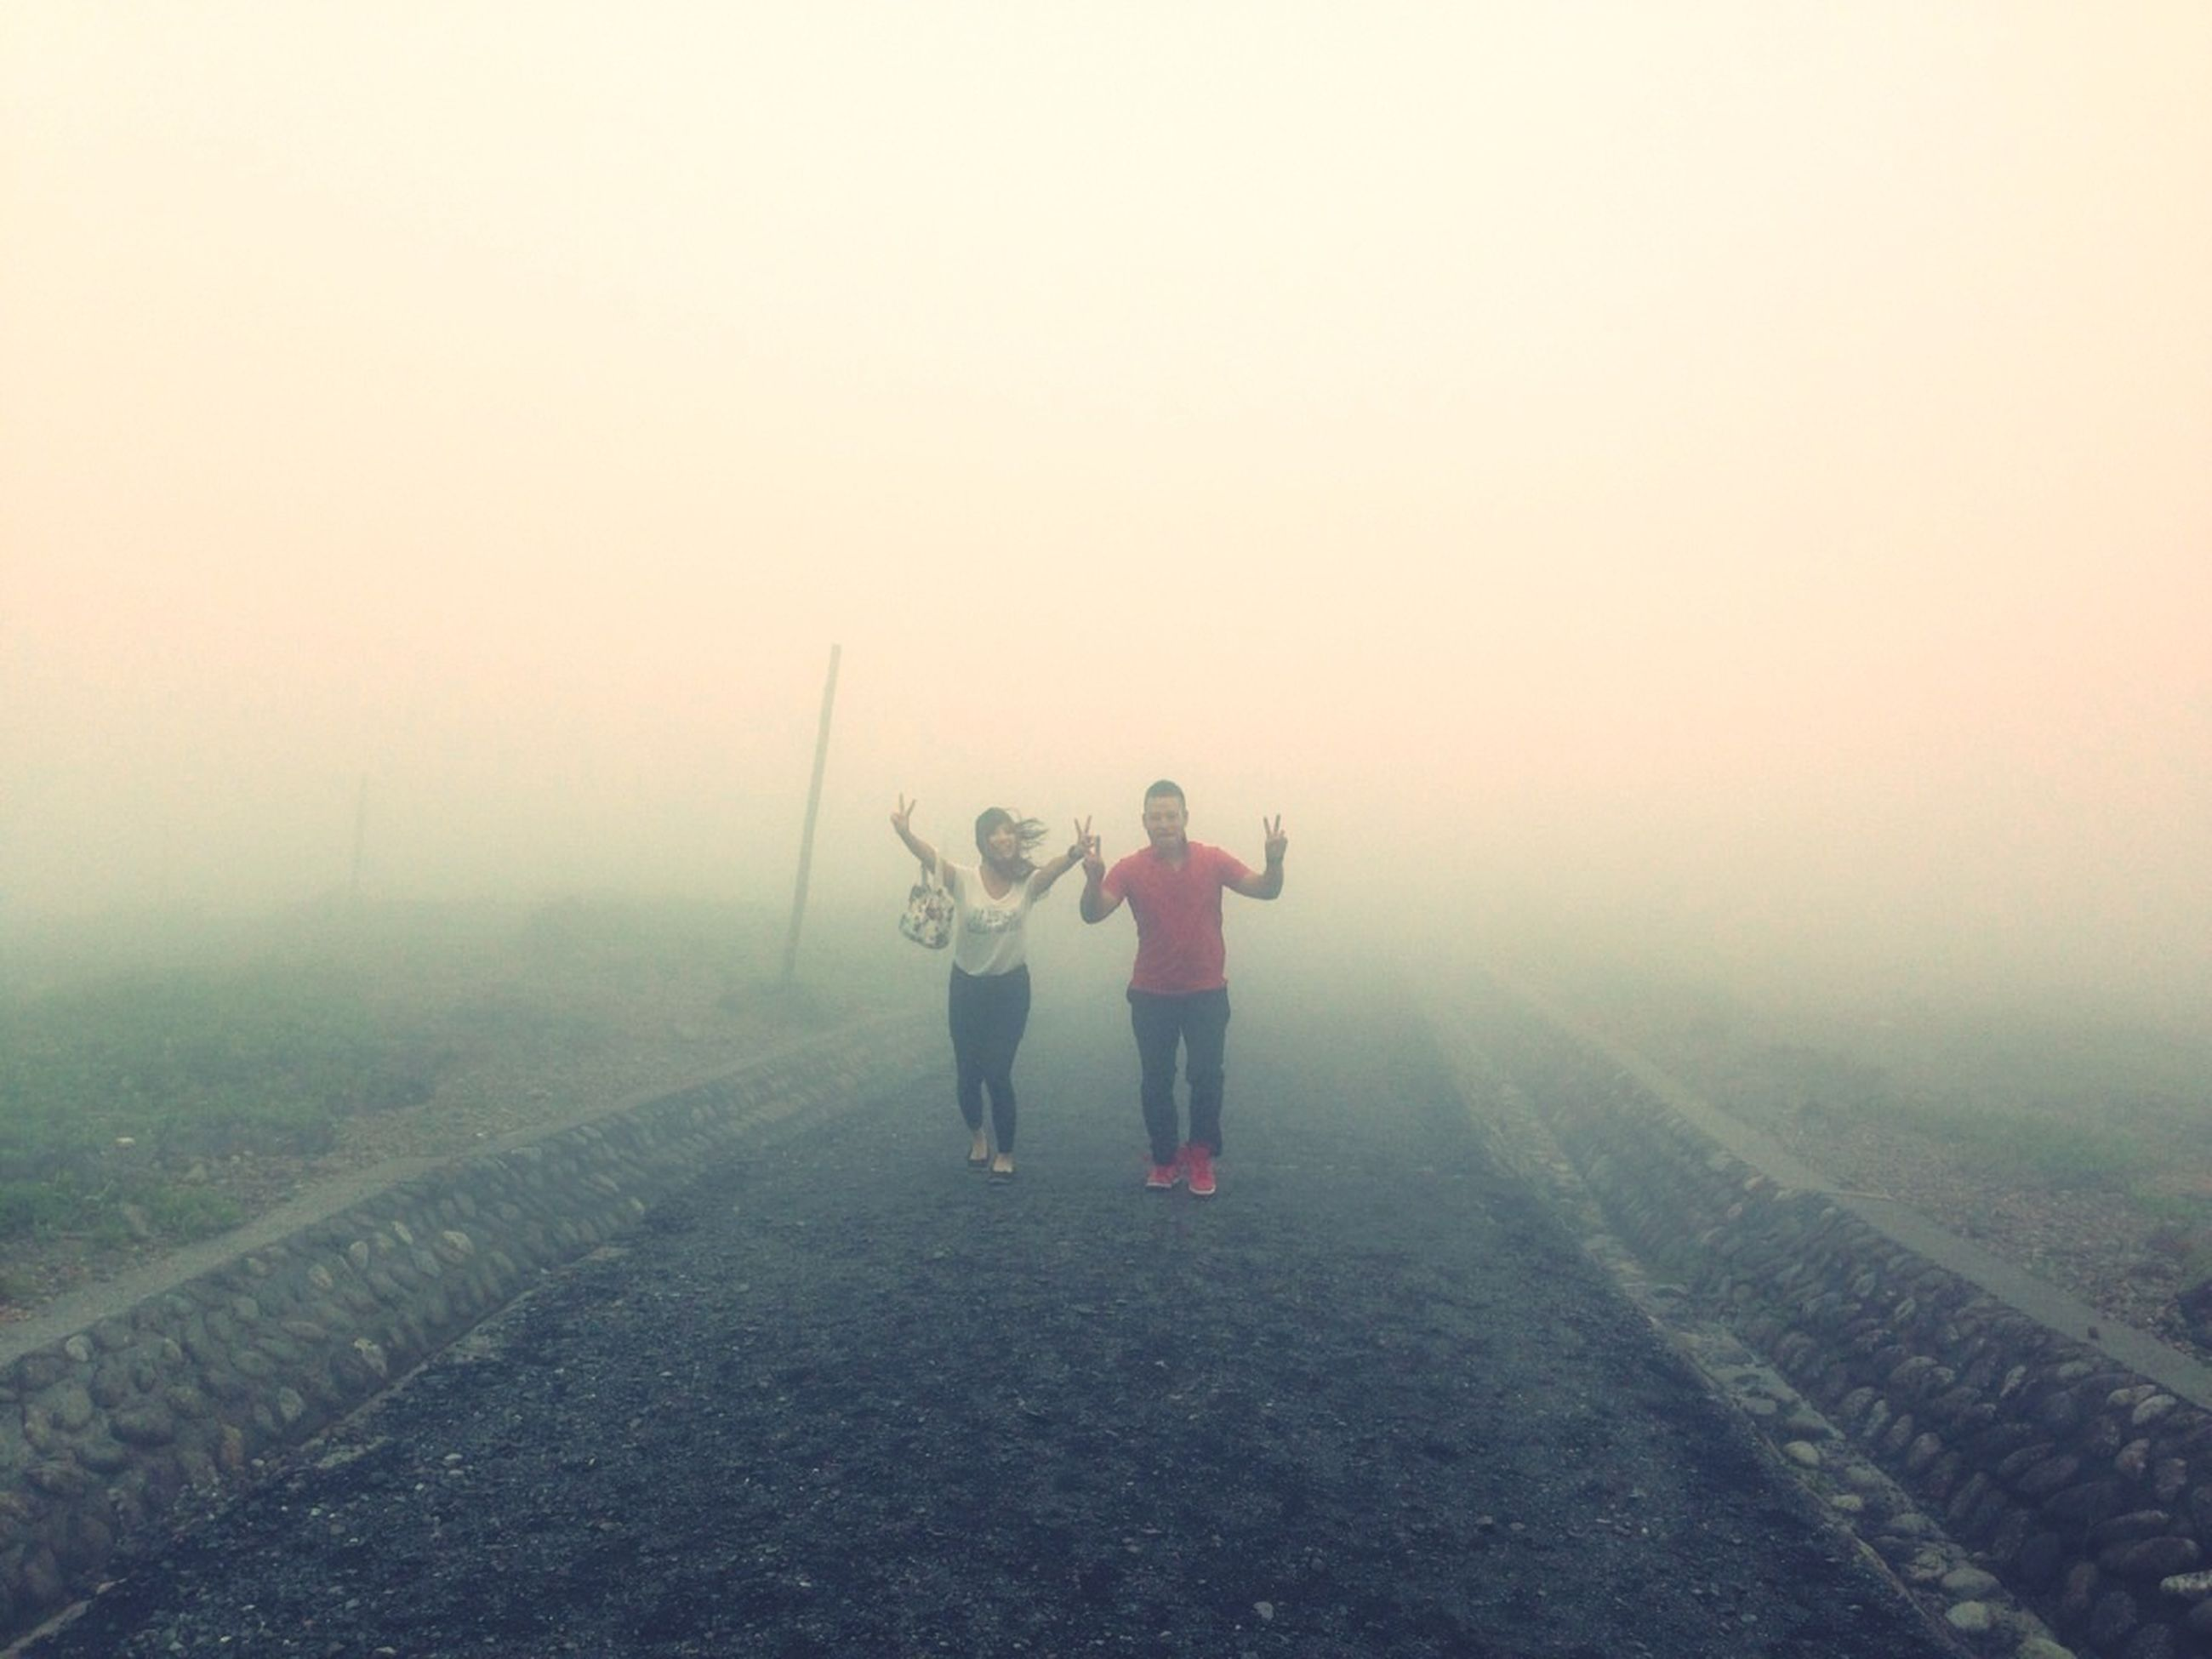 full length, lifestyles, leisure activity, rear view, fog, casual clothing, togetherness, men, bonding, walking, boys, childhood, foggy, standing, field, copy space